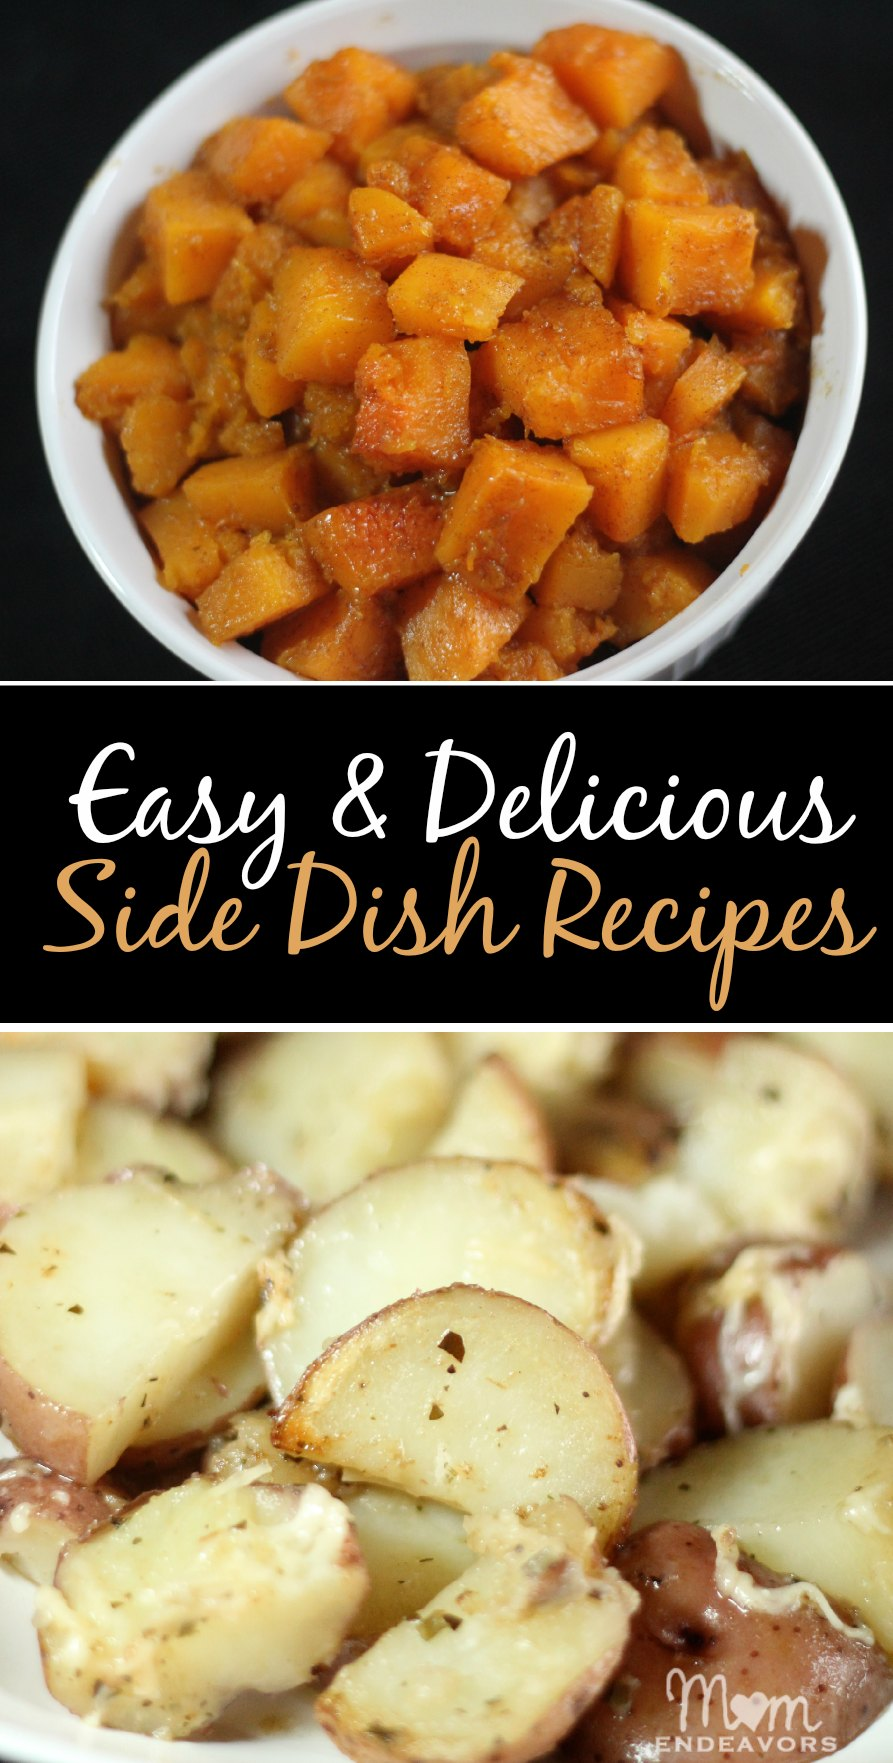 Easy Side Dish Recipes